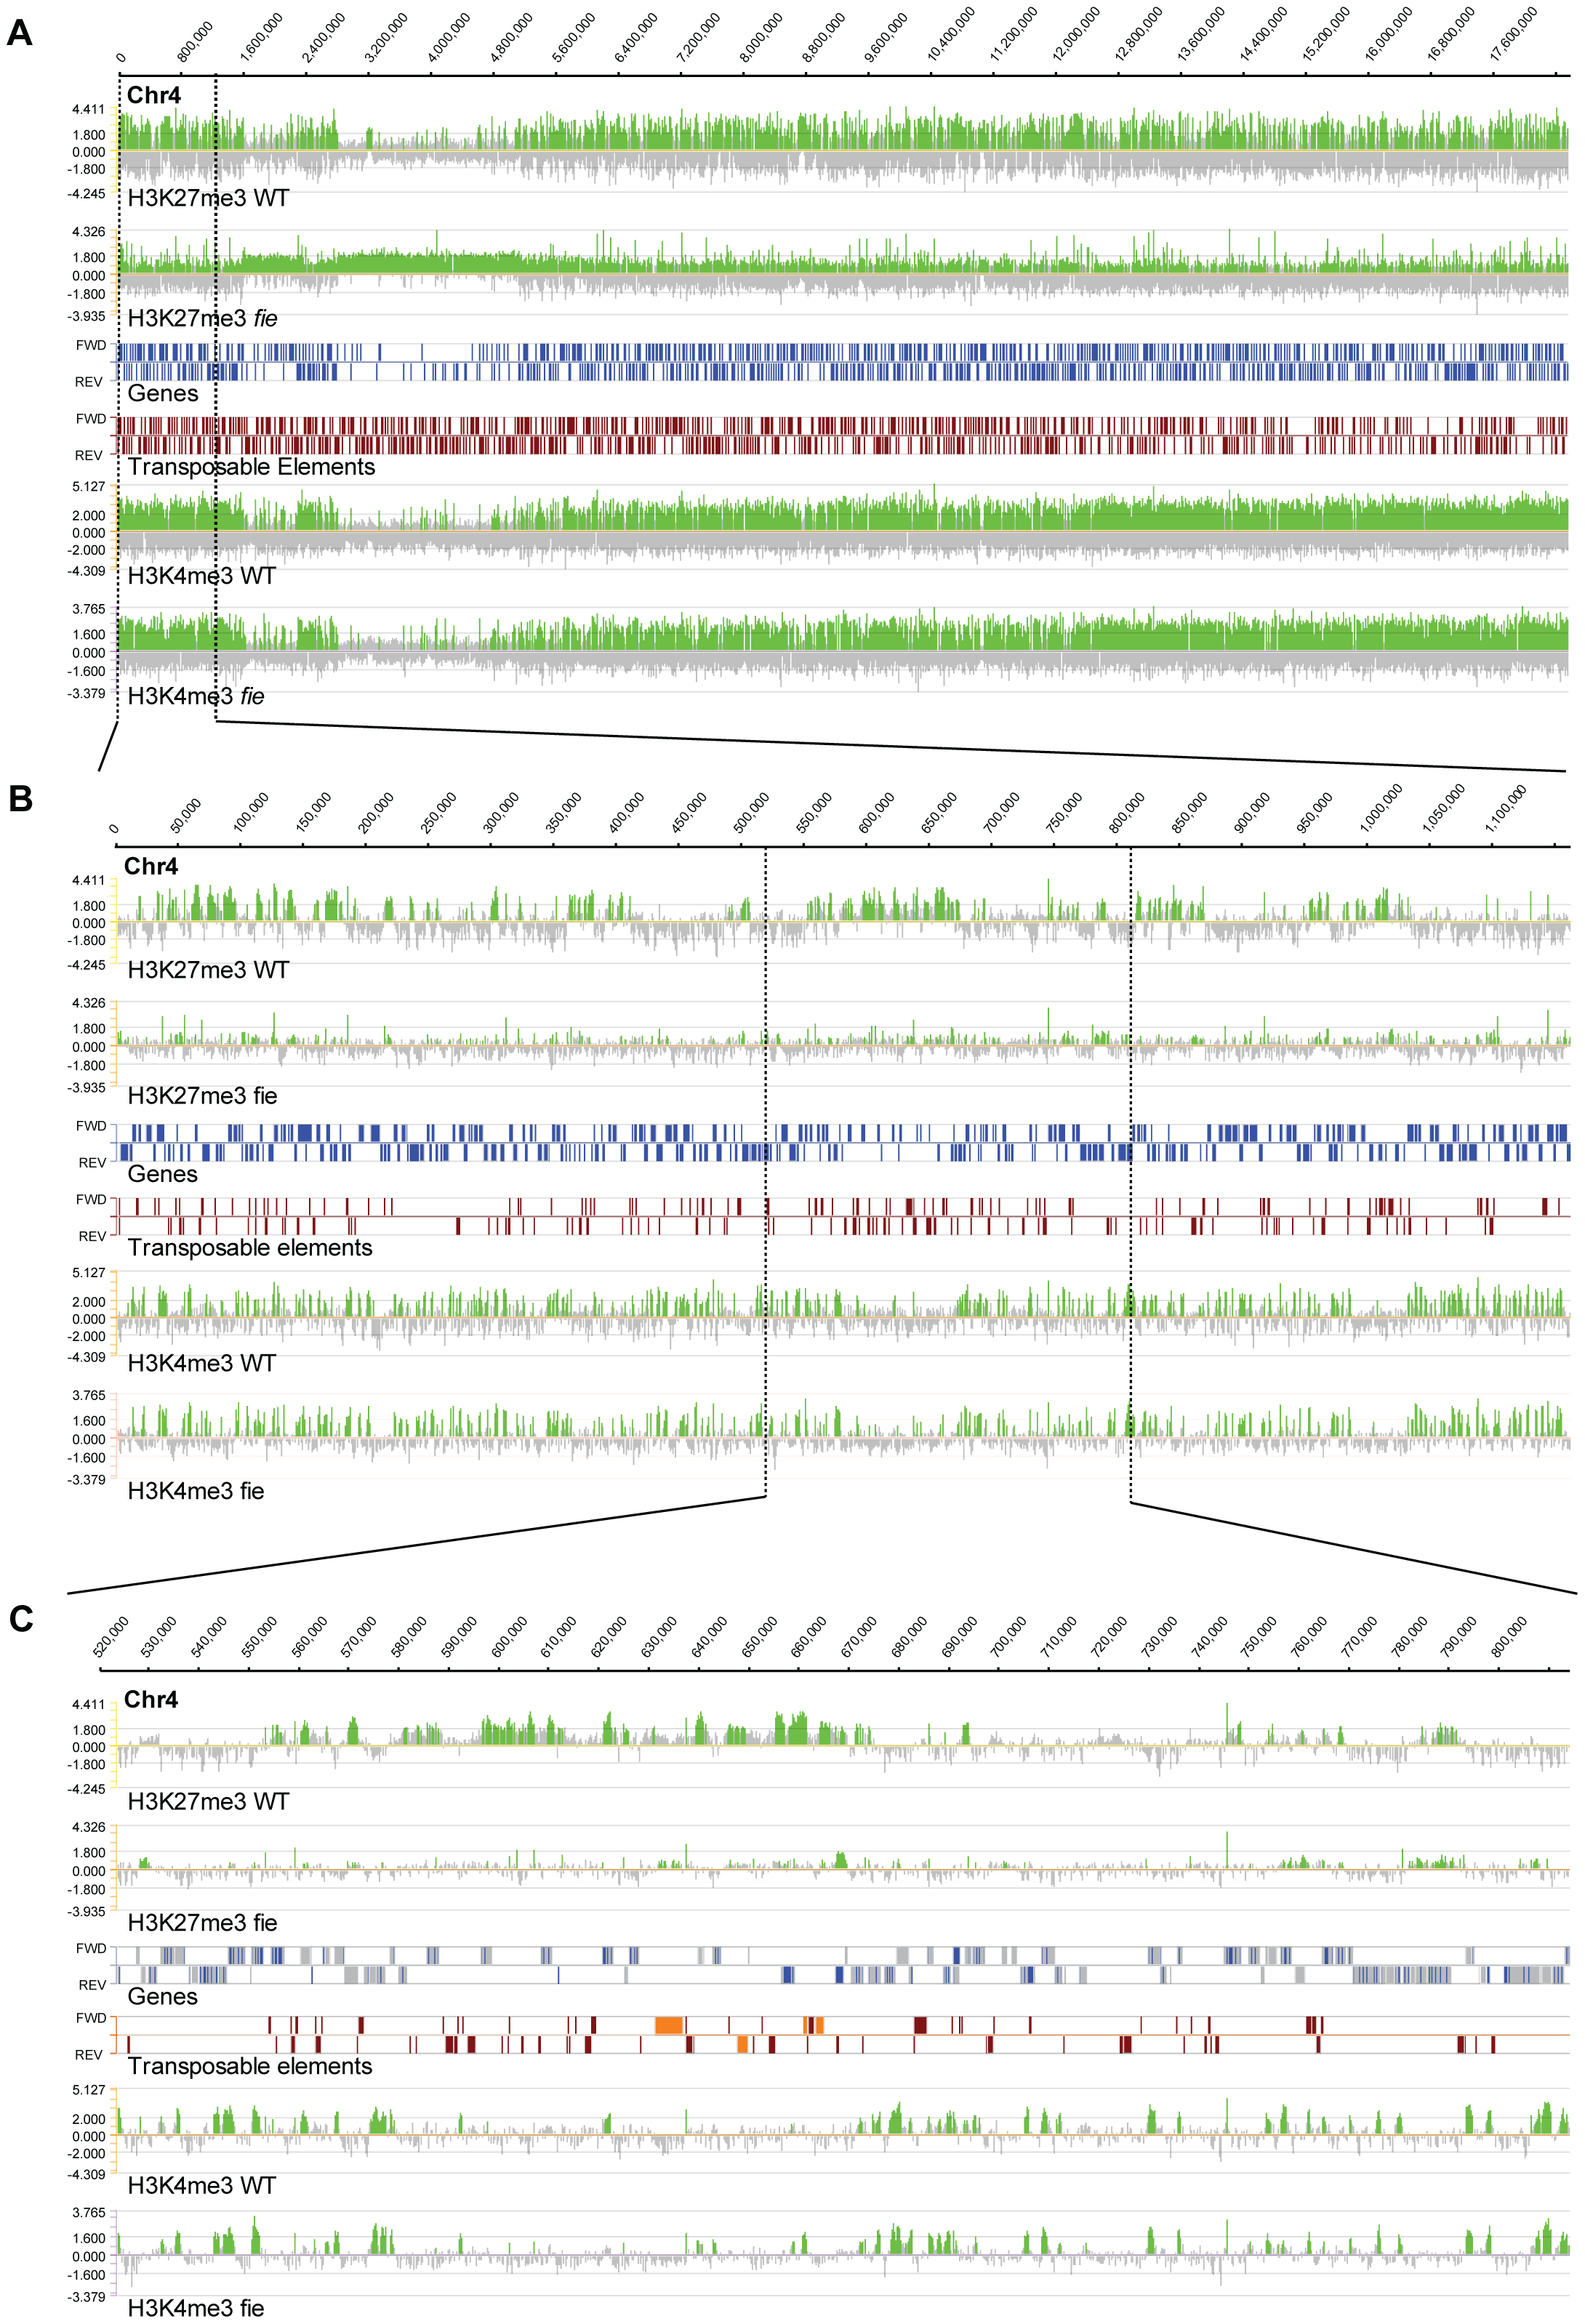 Genome-wide distribution of H3K27me3 and H3K4me3 marks.